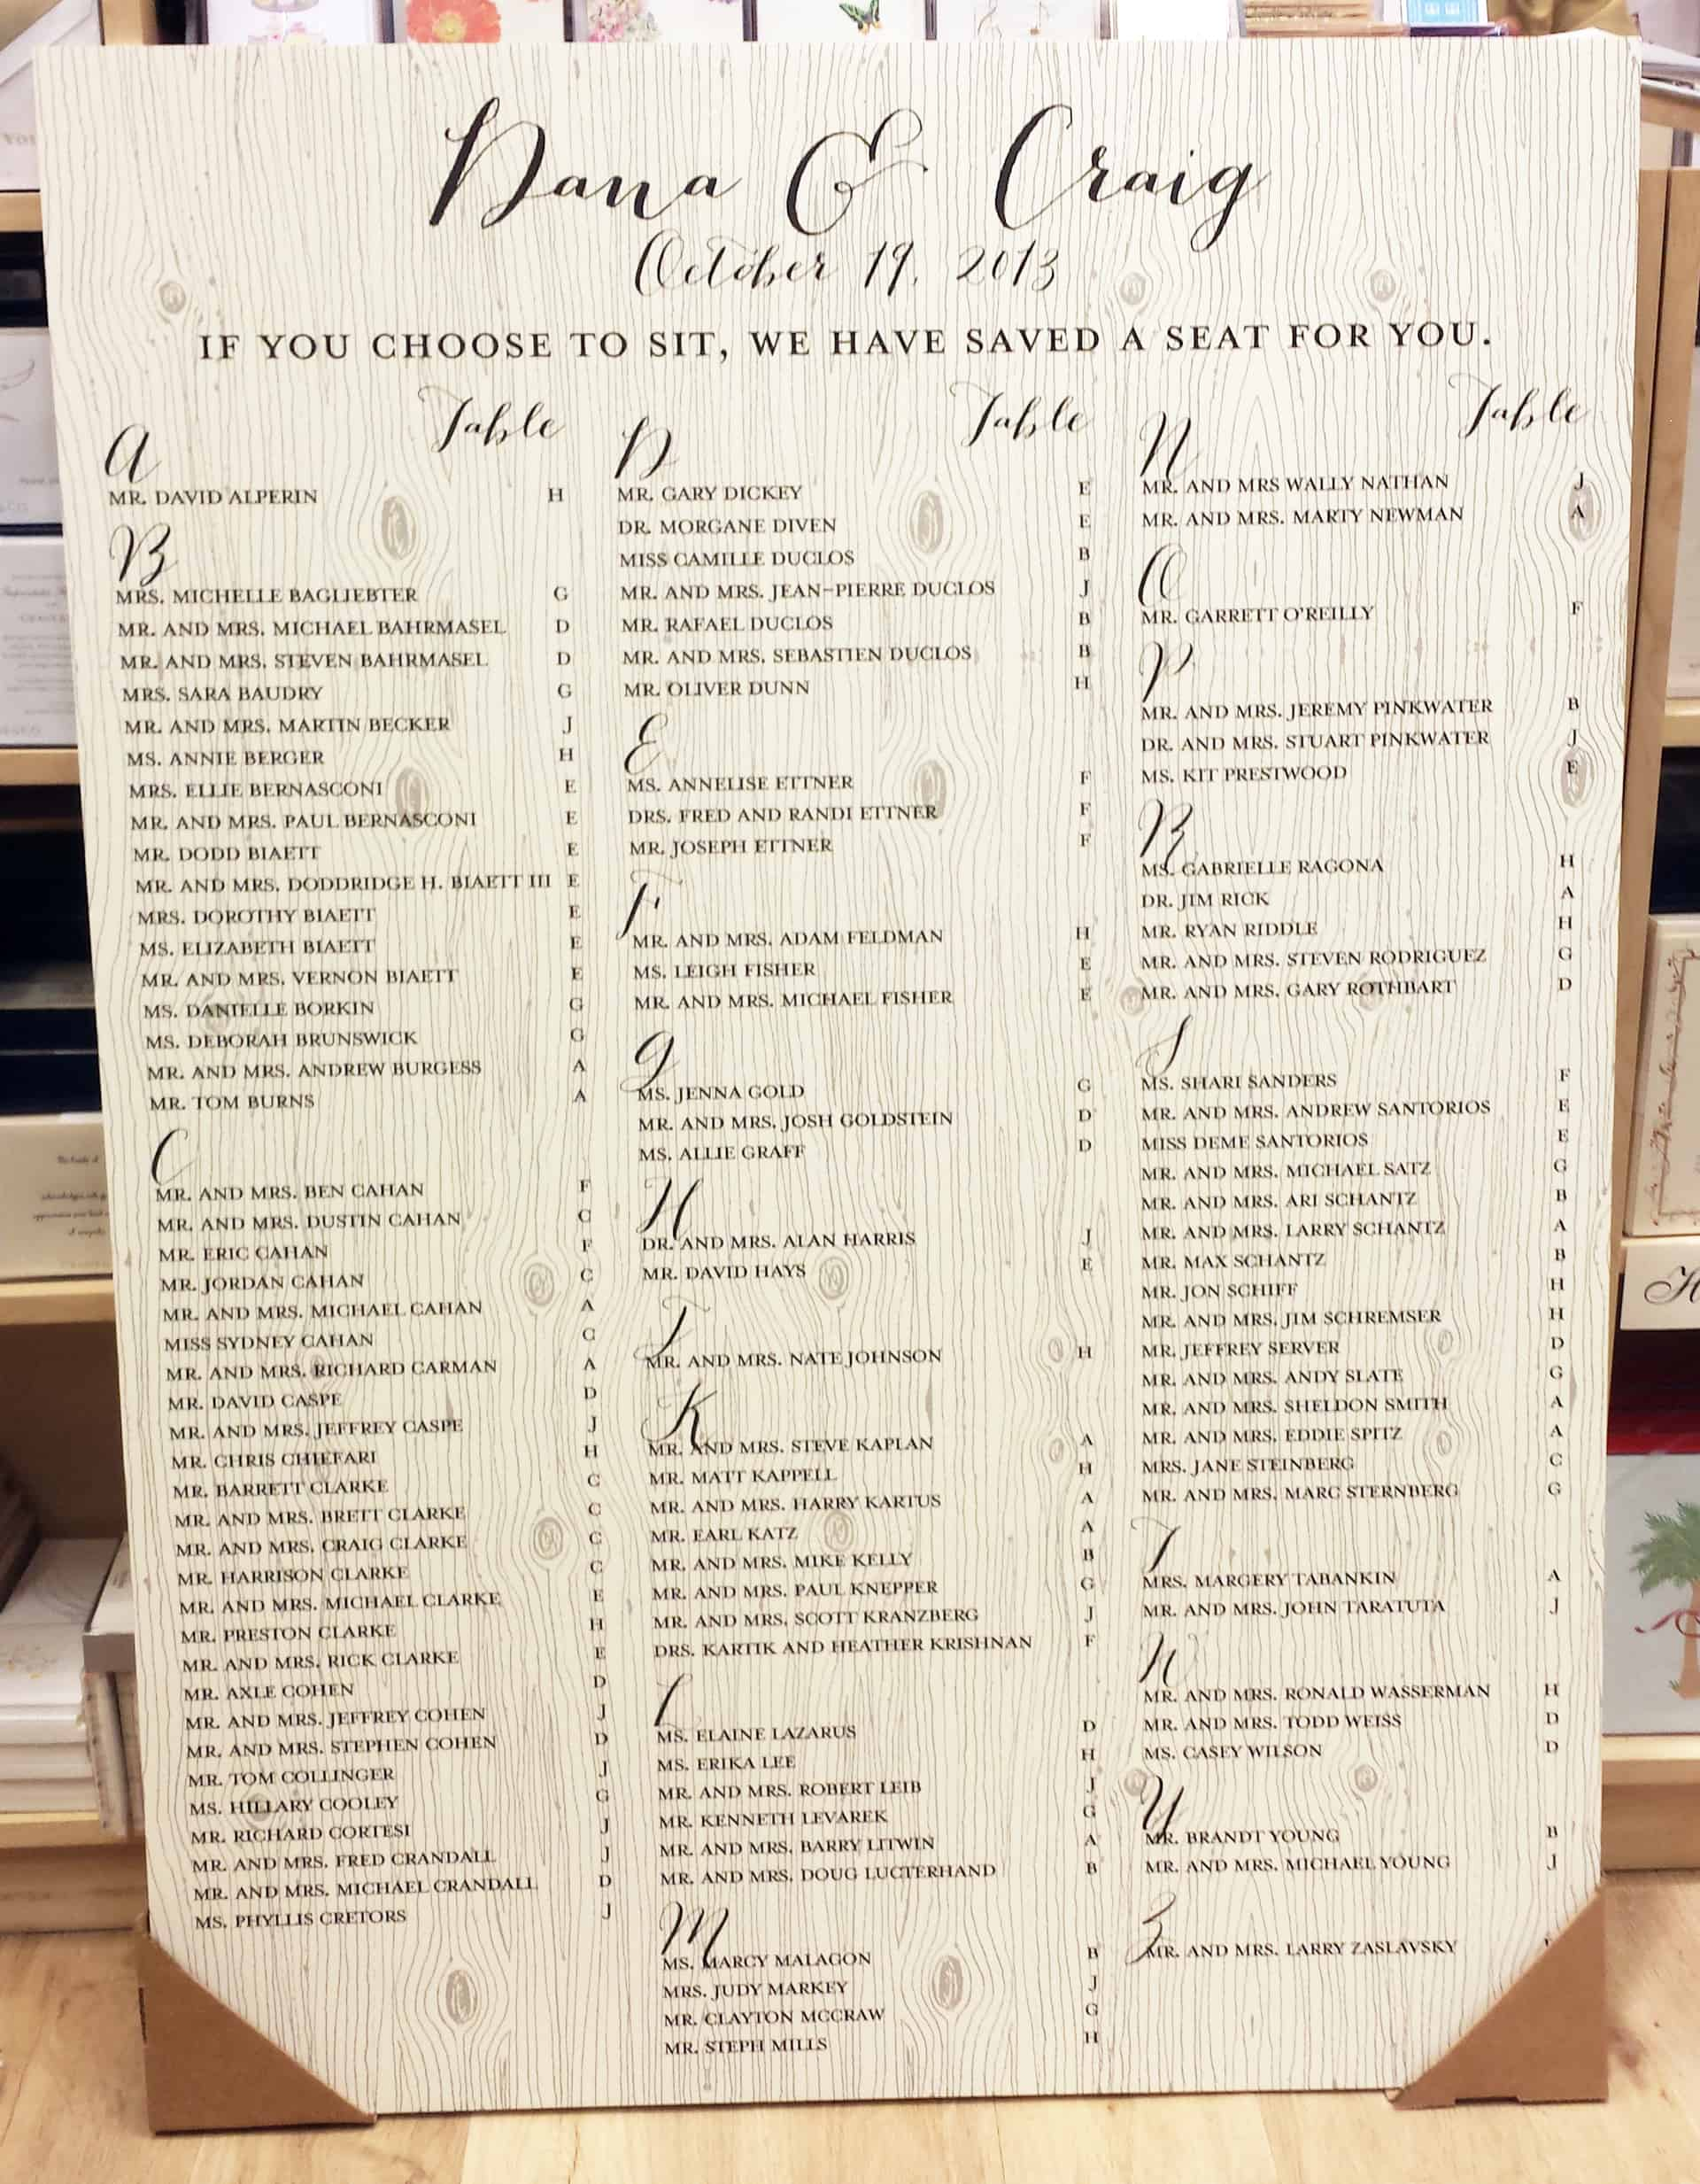 Wedding Seating Chart Wood Grain